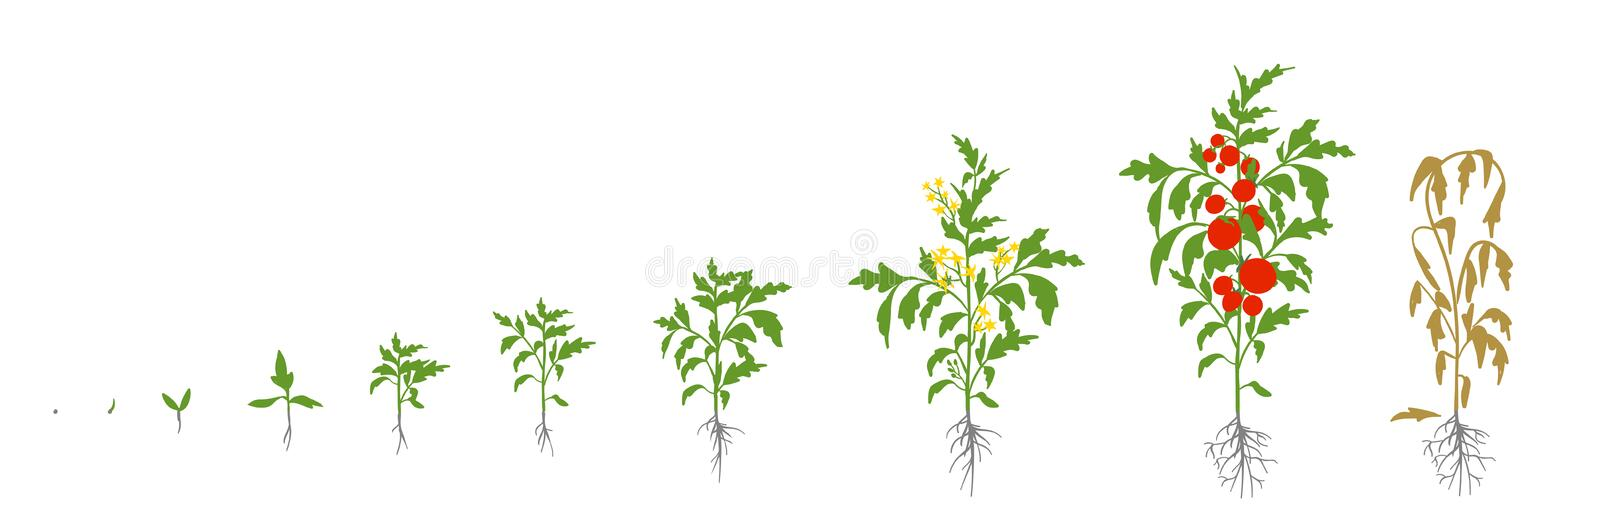 Tomato plant. Growth stages vector illustration. Solanum lycopersicum. Ripening period. From sprout to bush with fruits vector illustration